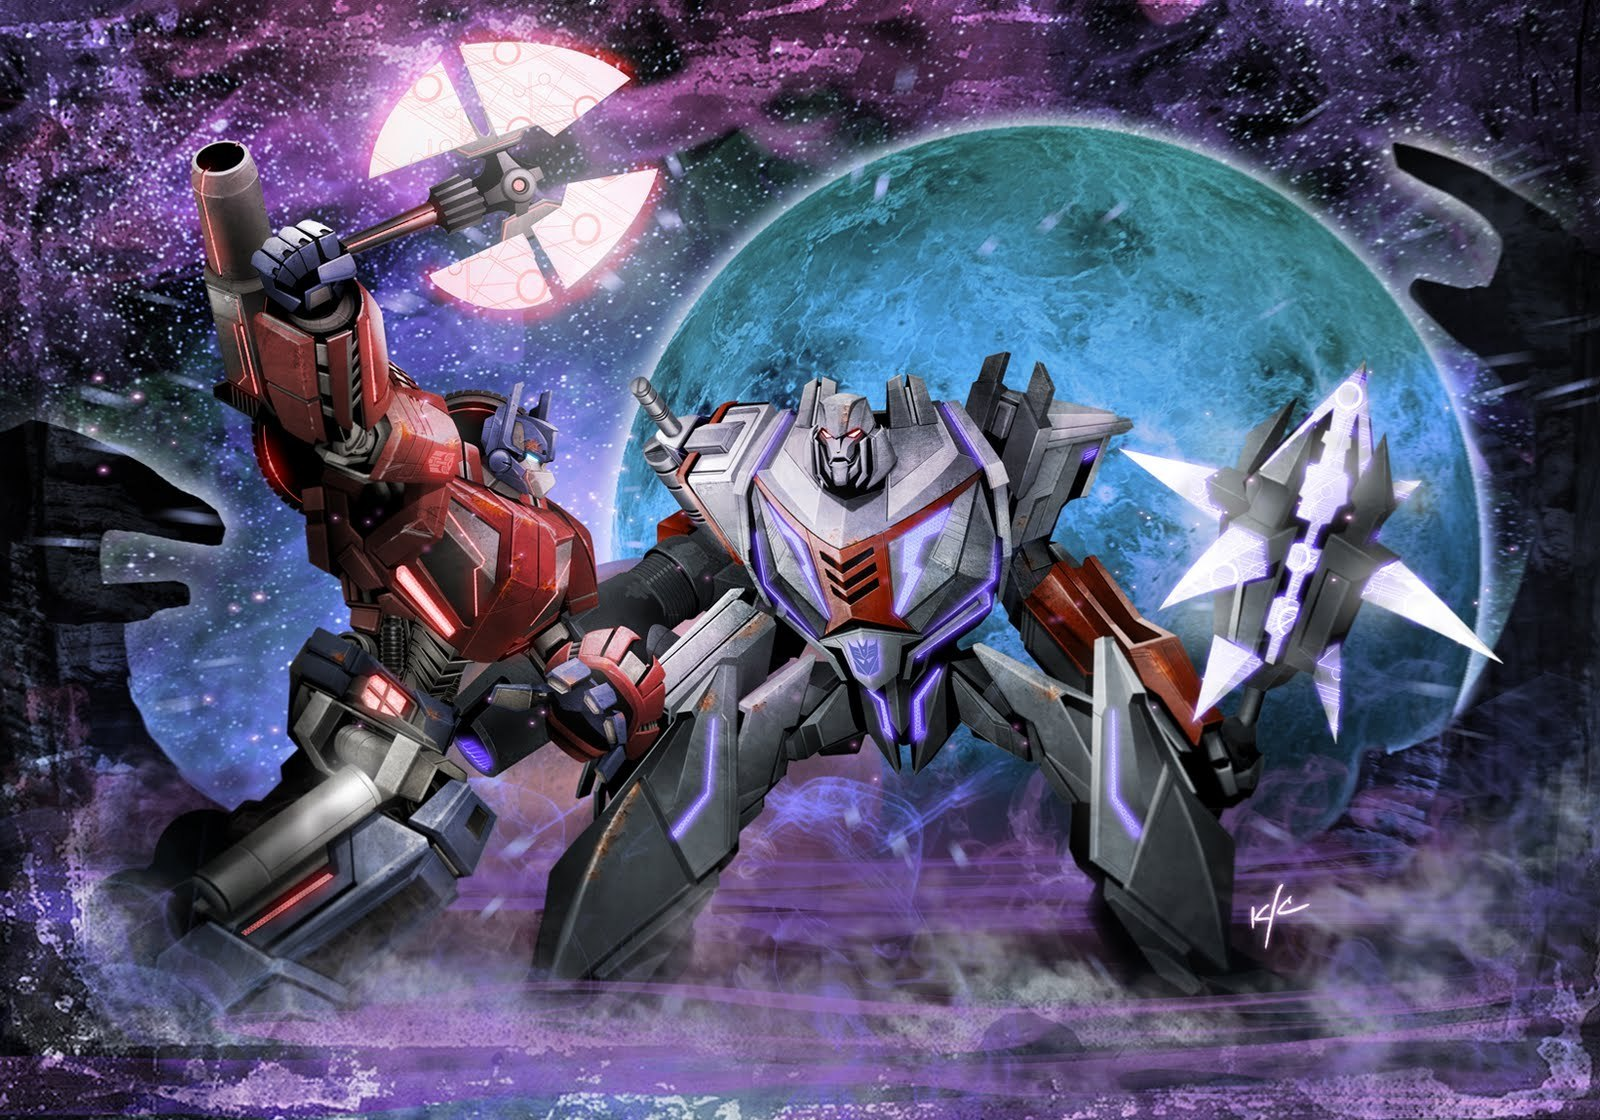 transformers war for cybertron images transformers hd wallpaper and